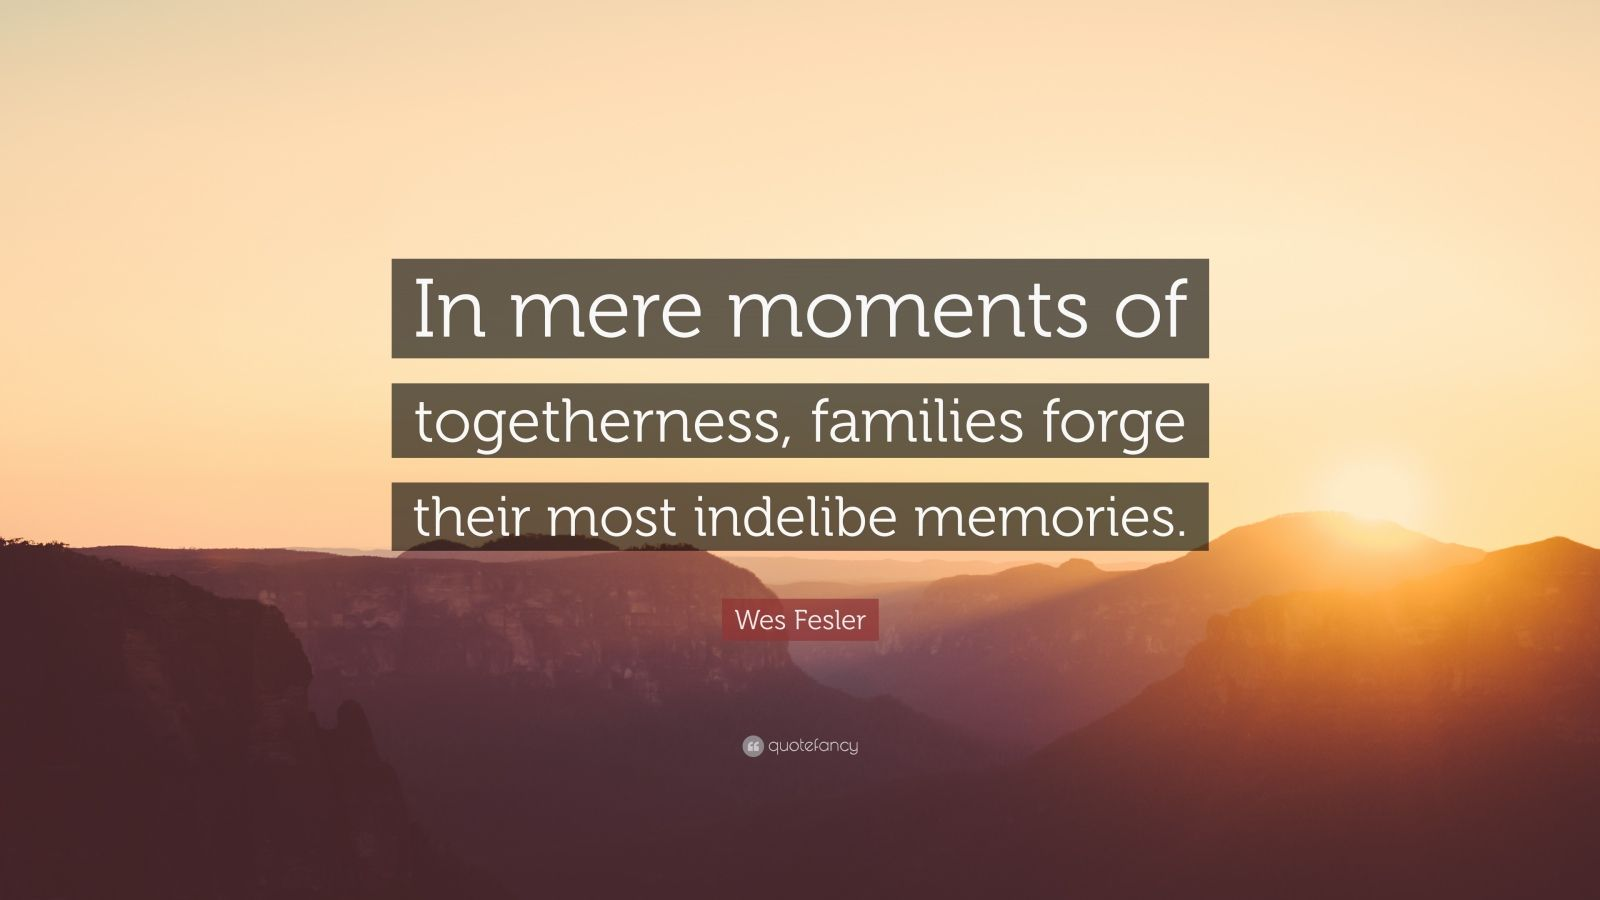 """Wes Fesler Quote: """"In mere moments of togetherness, families forge their most indelibe memories."""""""